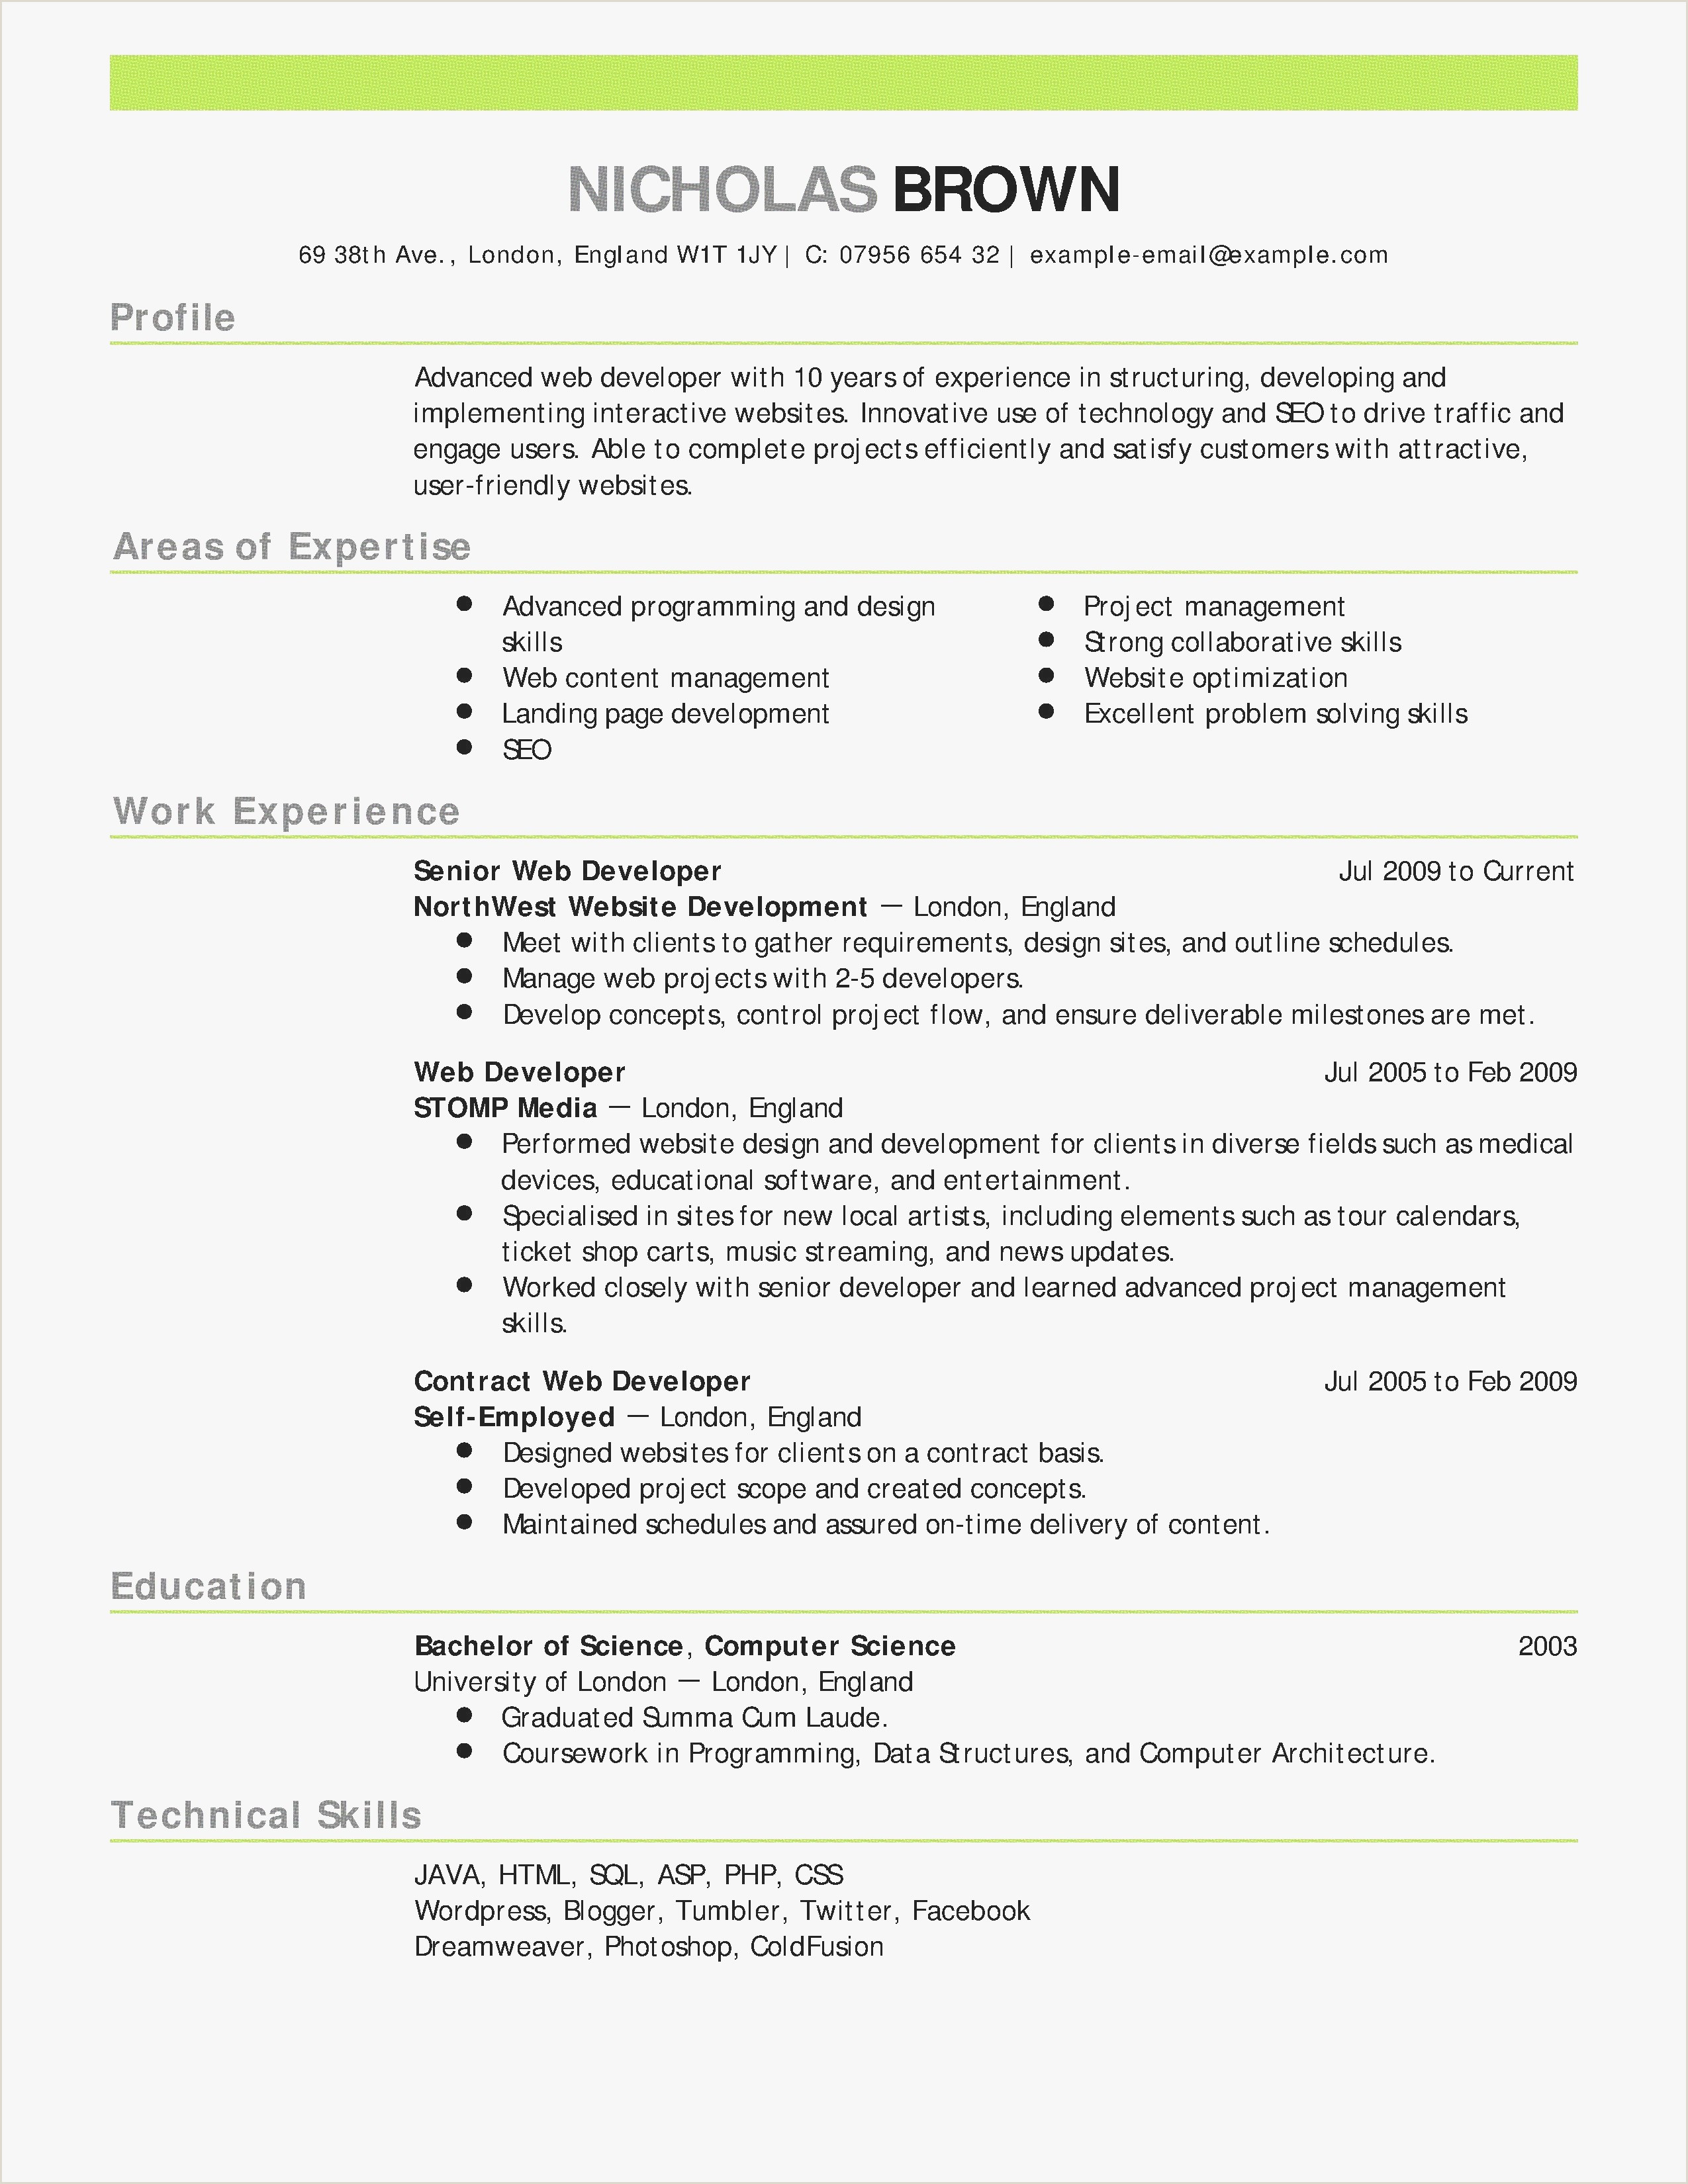 Resume format for Job Students Sample Of Resume for Part Time Job by Student sofas